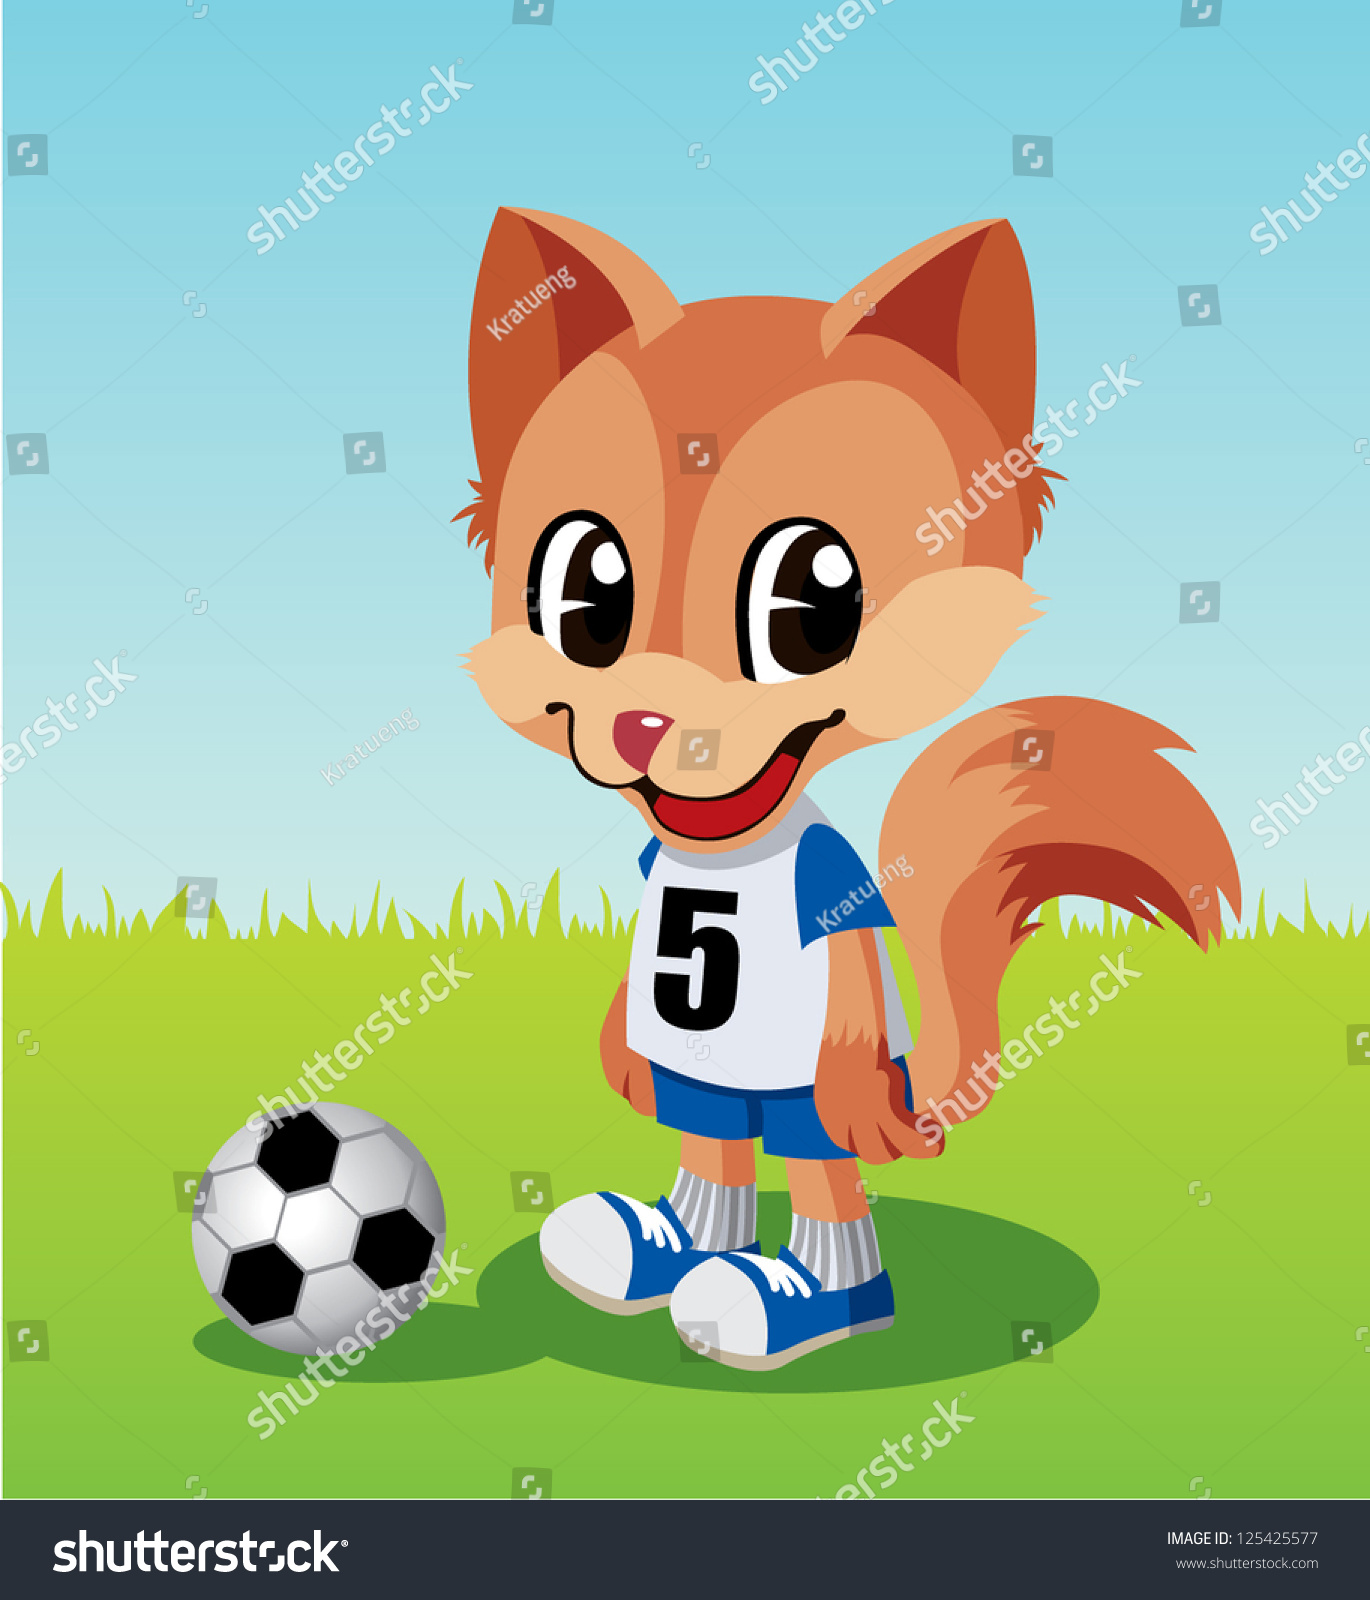 soccer player little fox stock vector 125425577 shutterstock